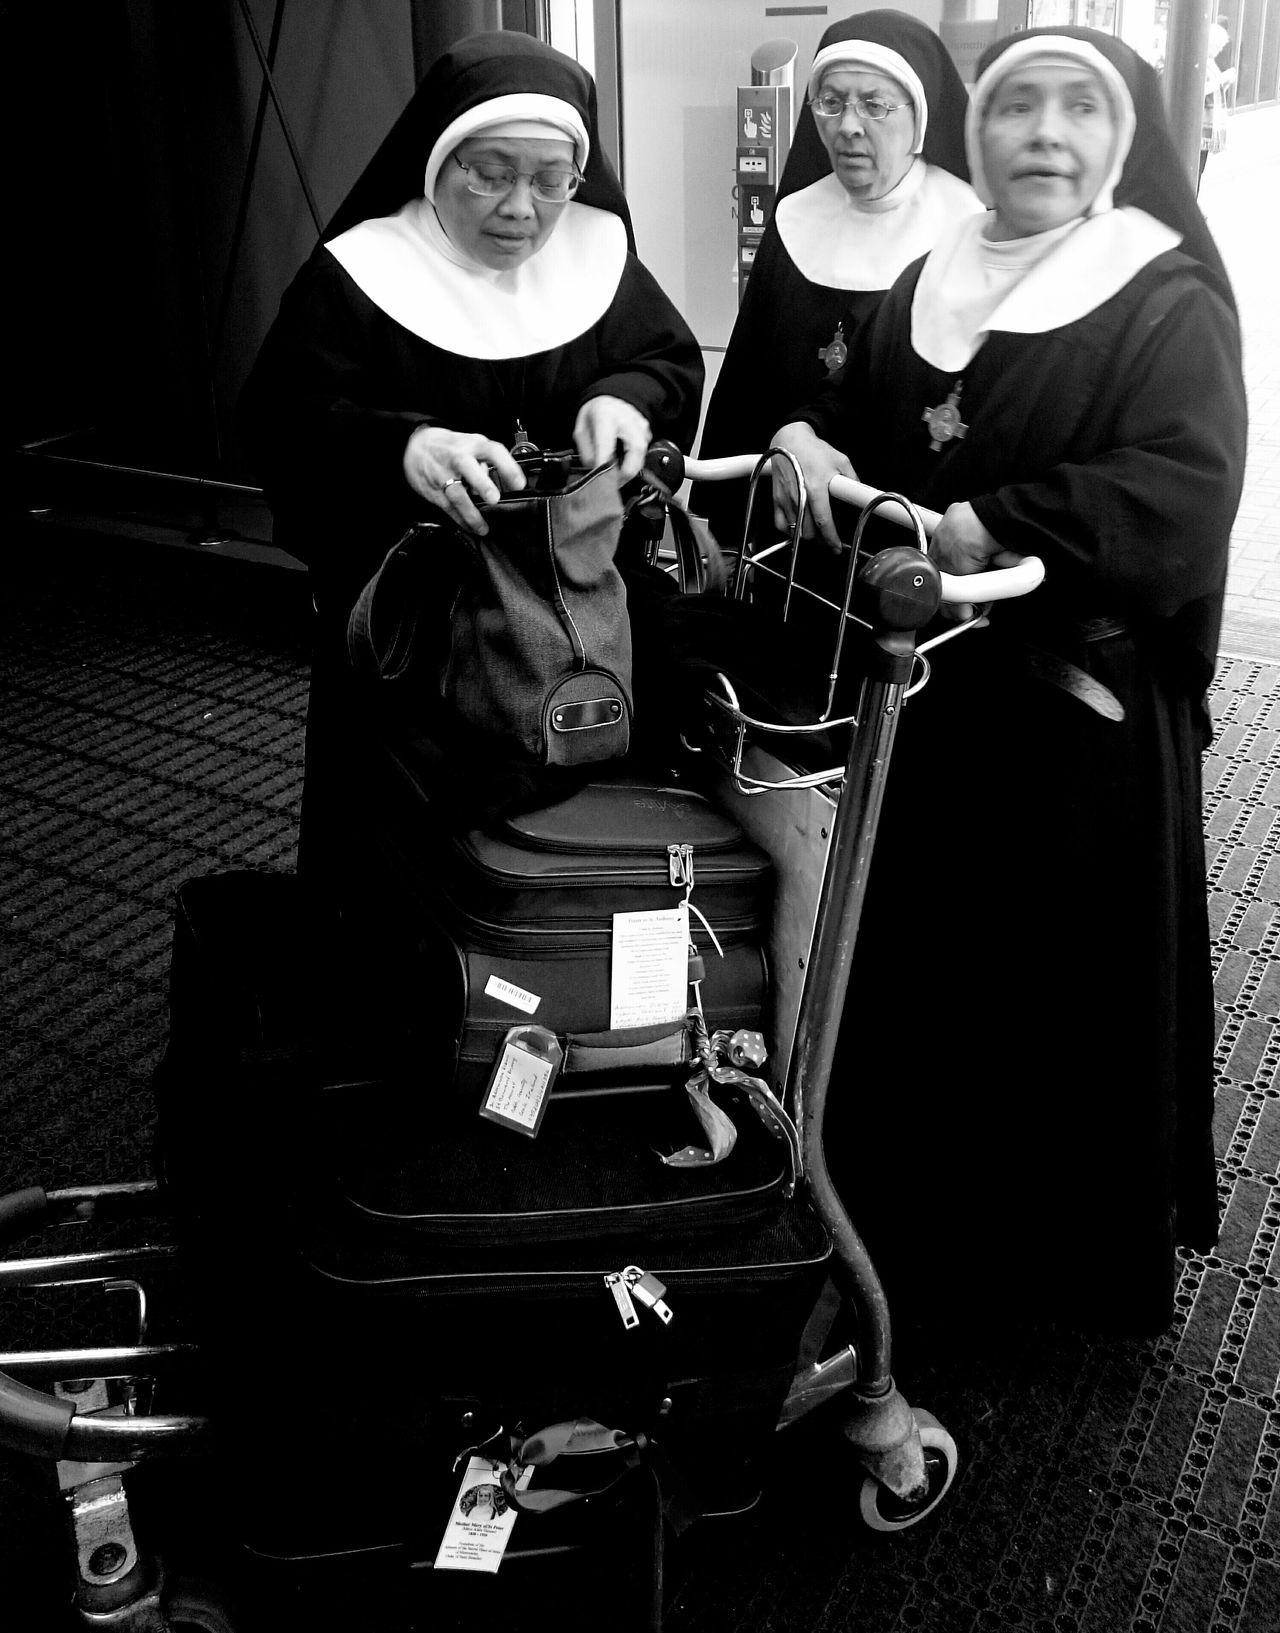 Nuns on the run Blackandwhite Photography Mobilephotography The Tourist Sony Xperia Z3 London City Airport